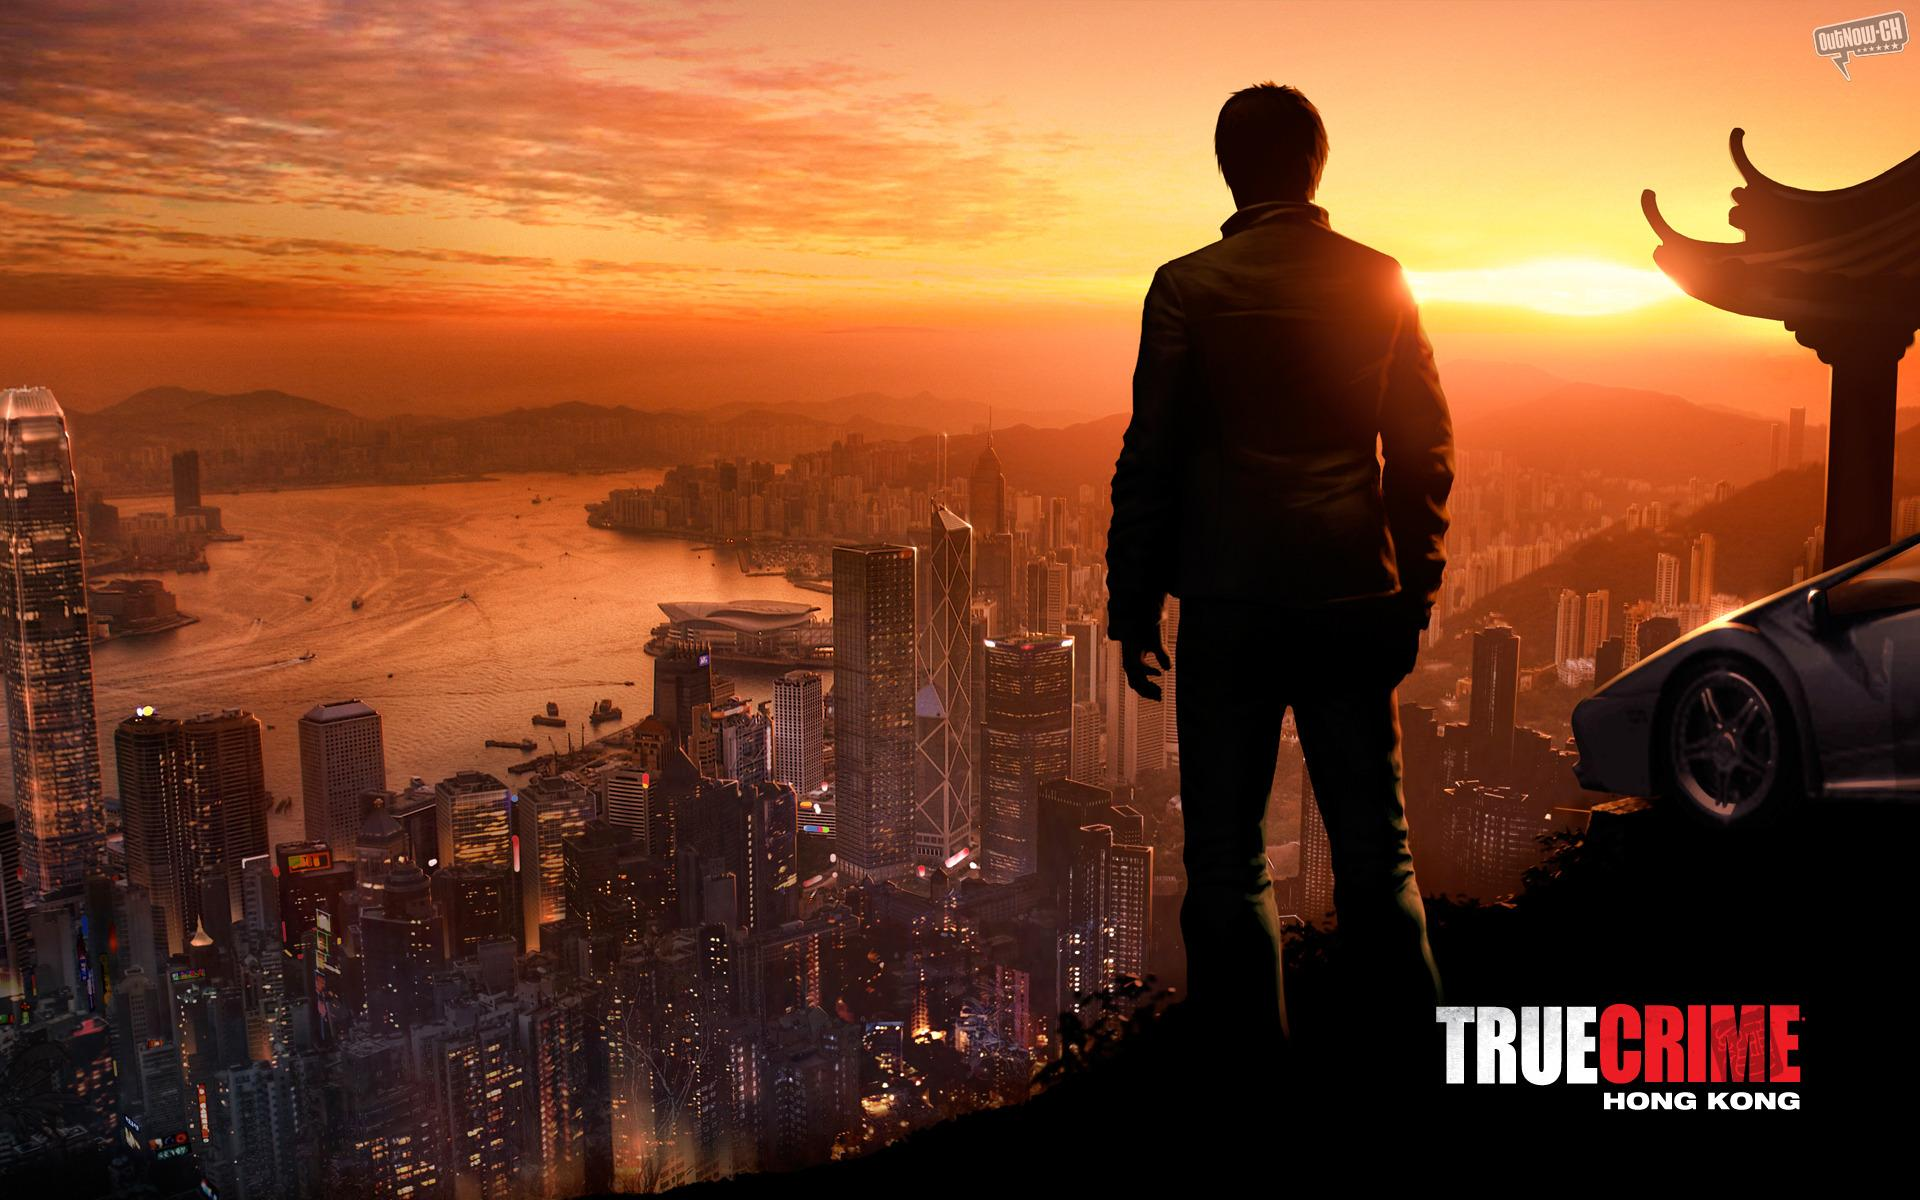 Обои True crime hongkong 1920x1200